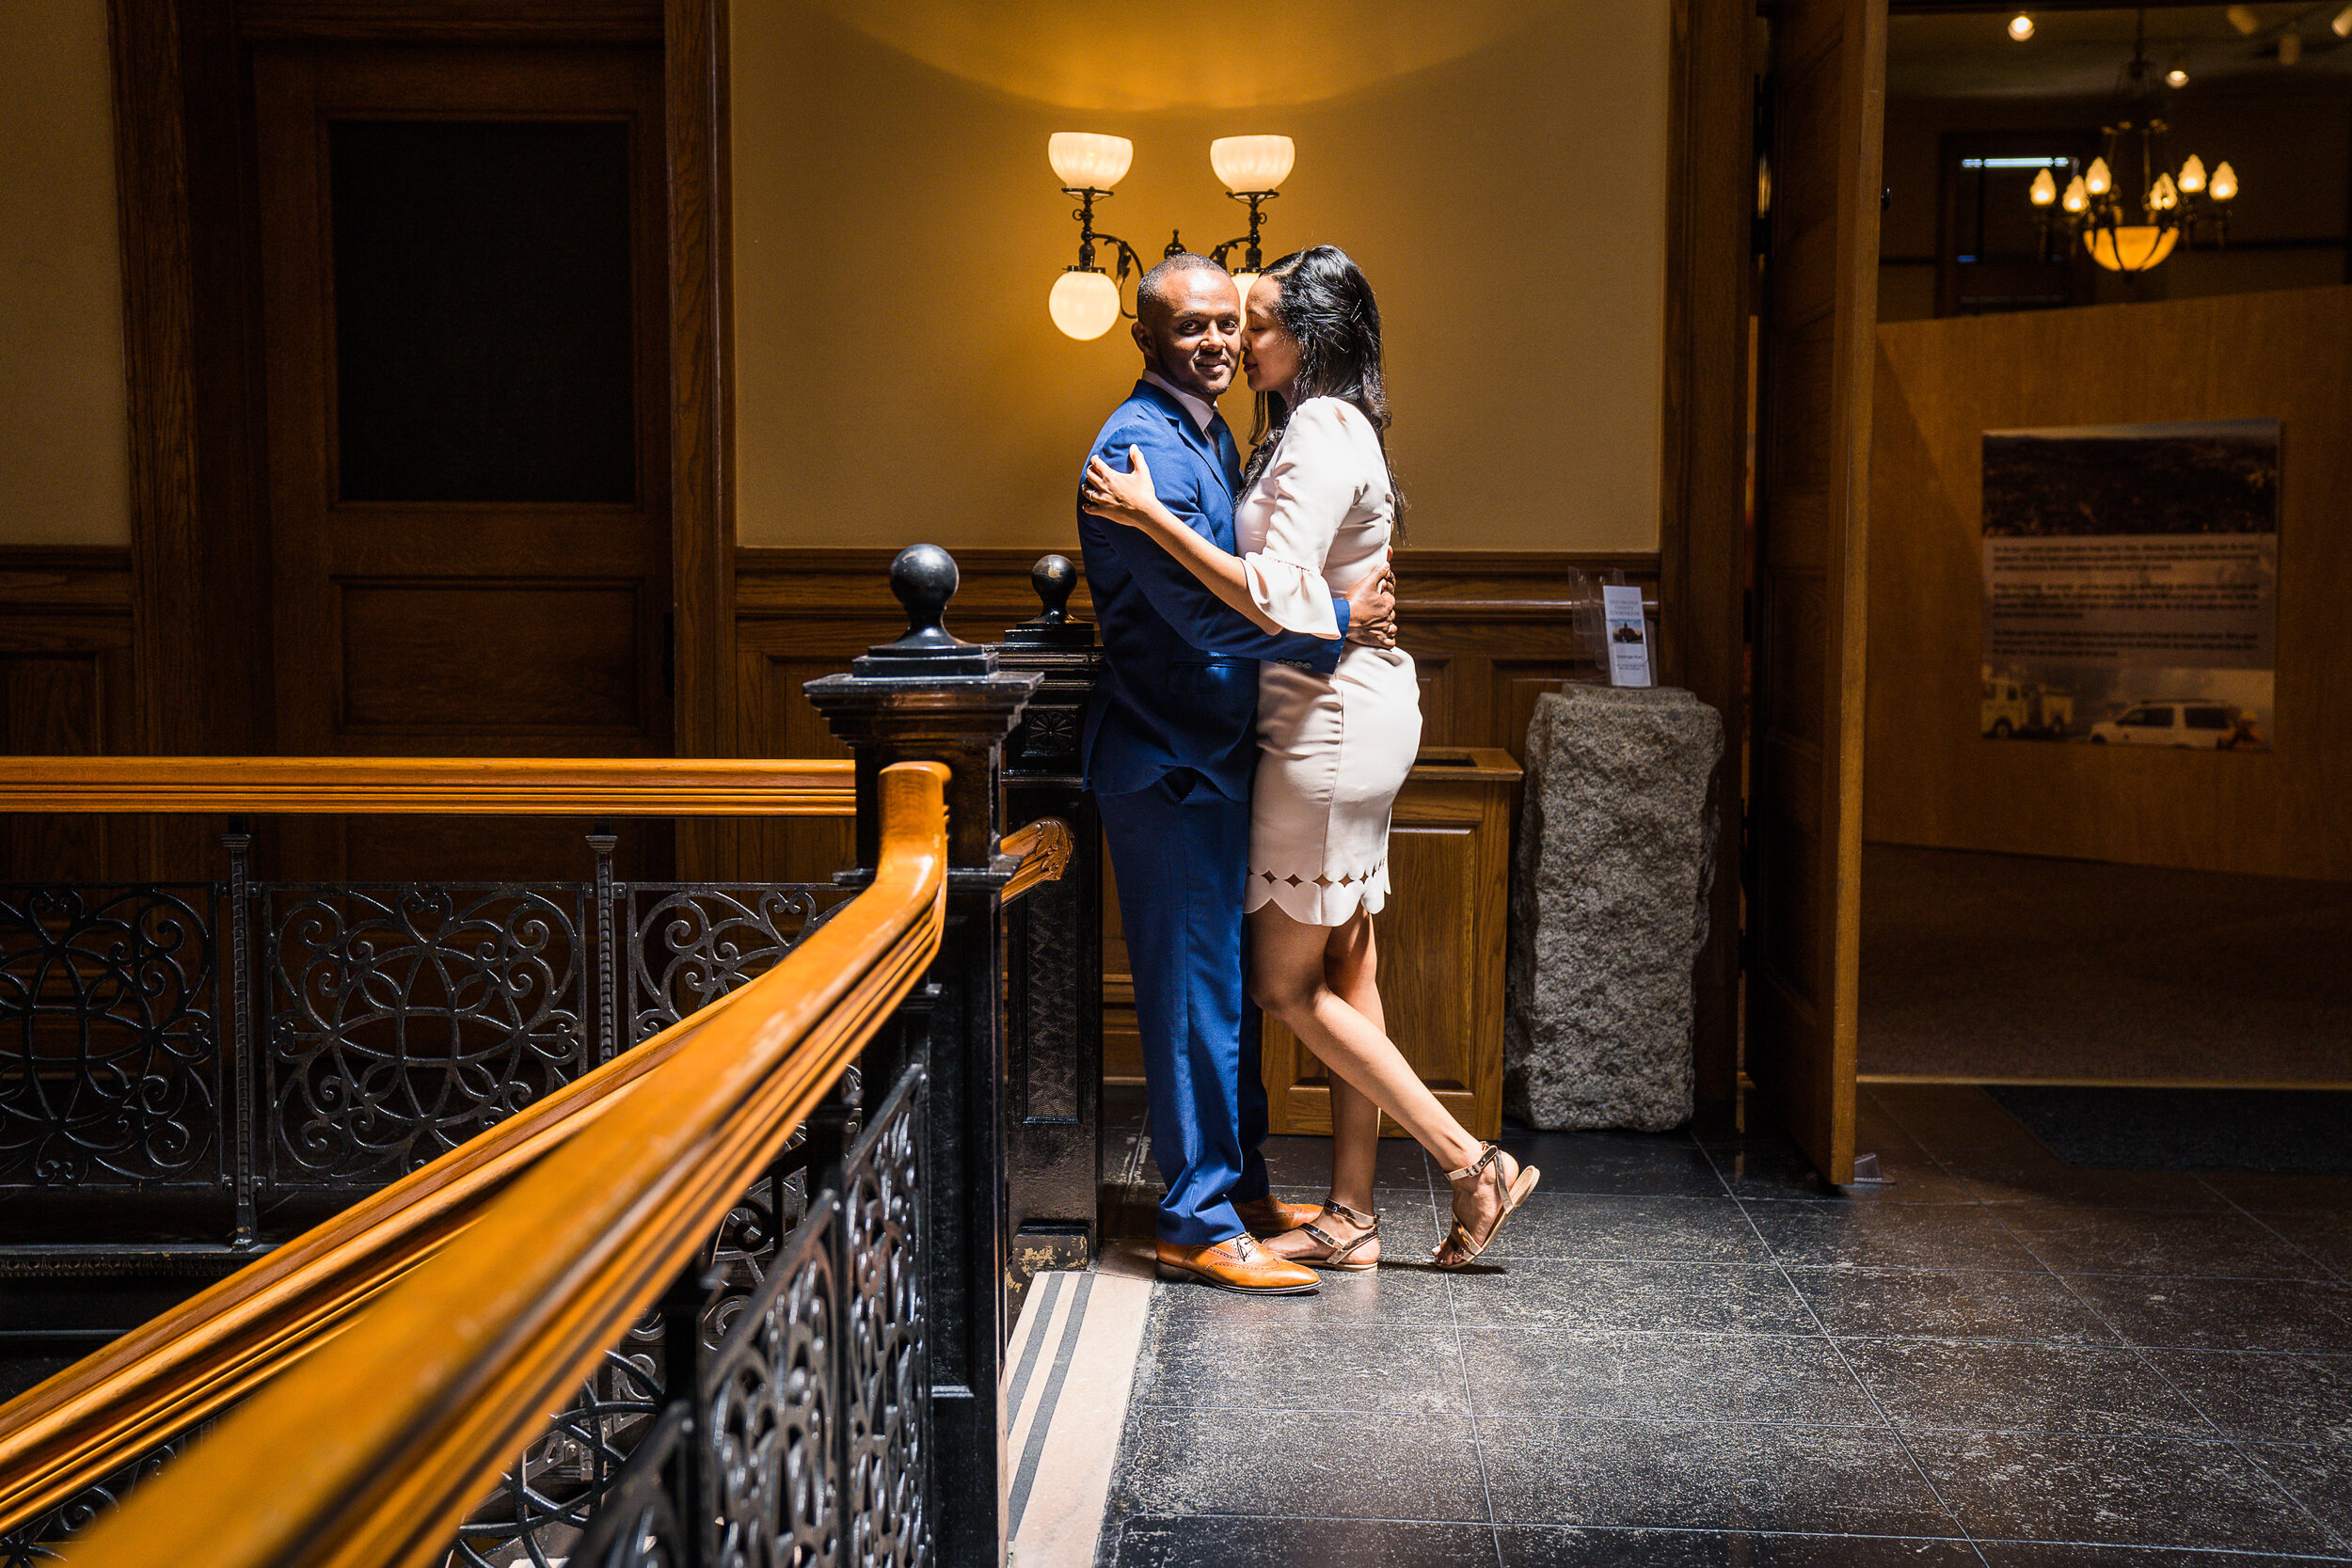 sewit-elopement-orange-county-santa-ana-courthouse-37.jpg